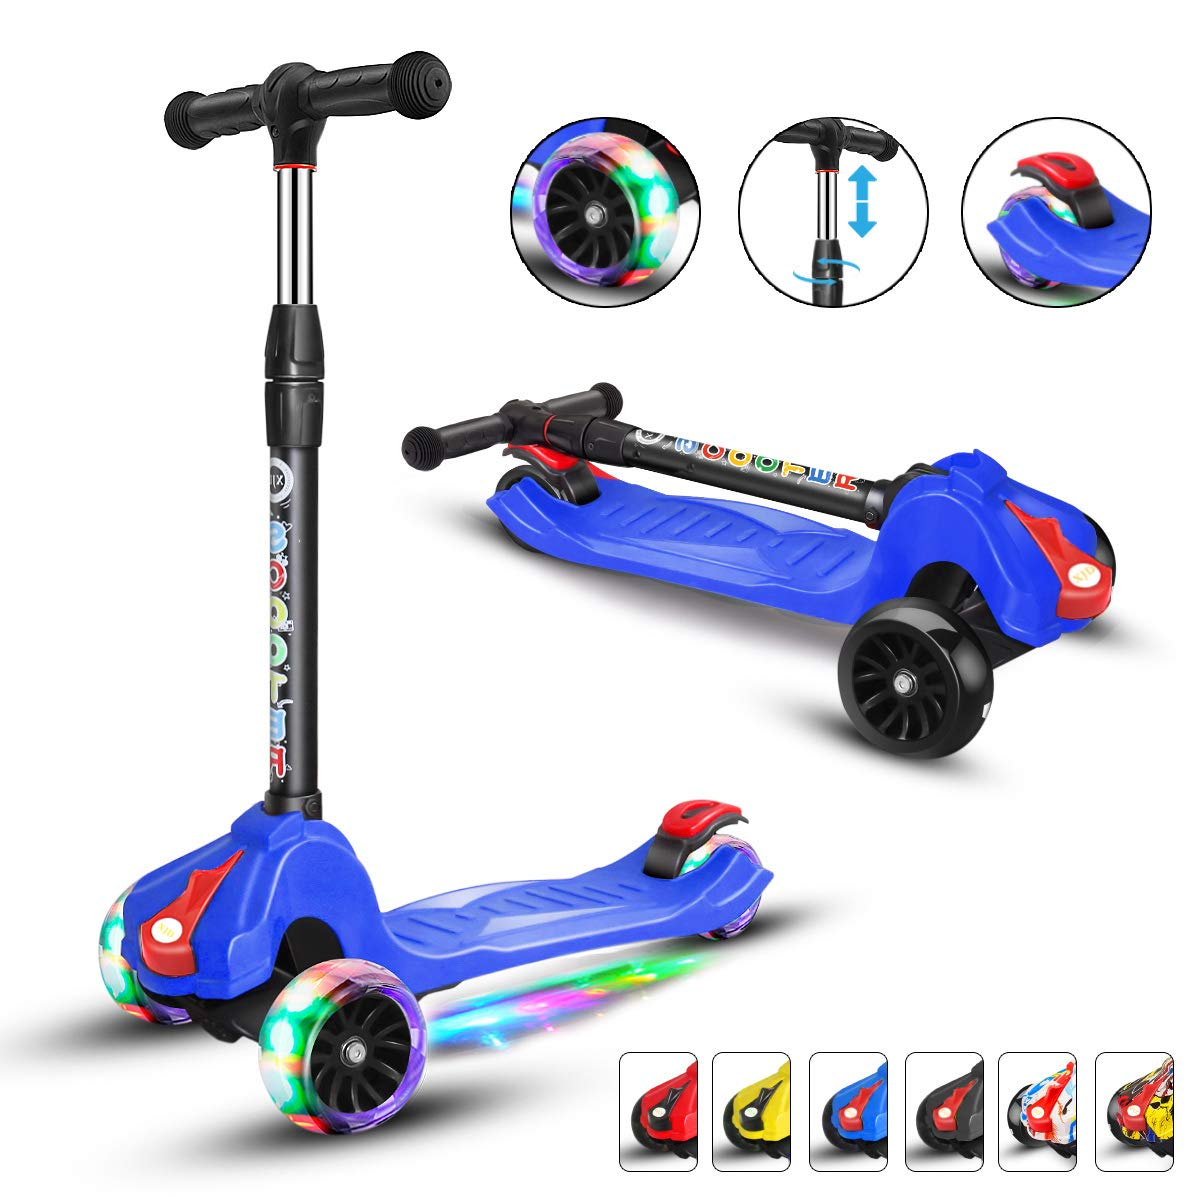 XJD Kick Scooters for Kids Toddler Scooters Adjustable Height Extra-Wide 3 Wheels Boys Girls 100% Assembled Light Up Wheels Children from 2 to 14 Year-Old(Blue)